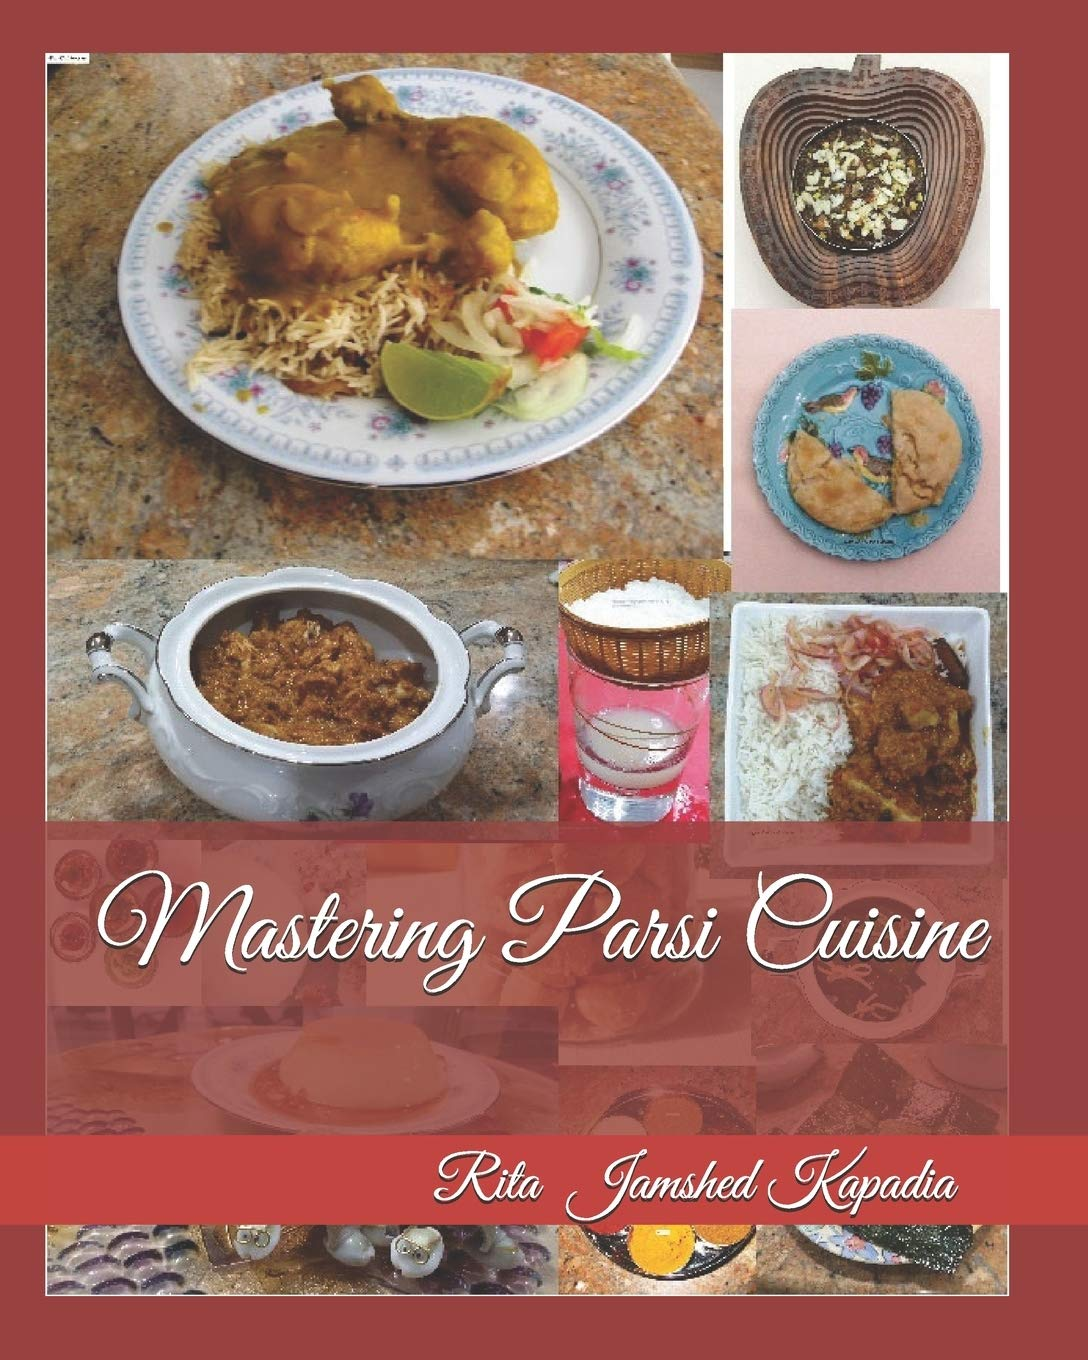 Mastering Parsi Cuisine by Rita Jamshed Kapadia This cookbook has 143 Recipes.